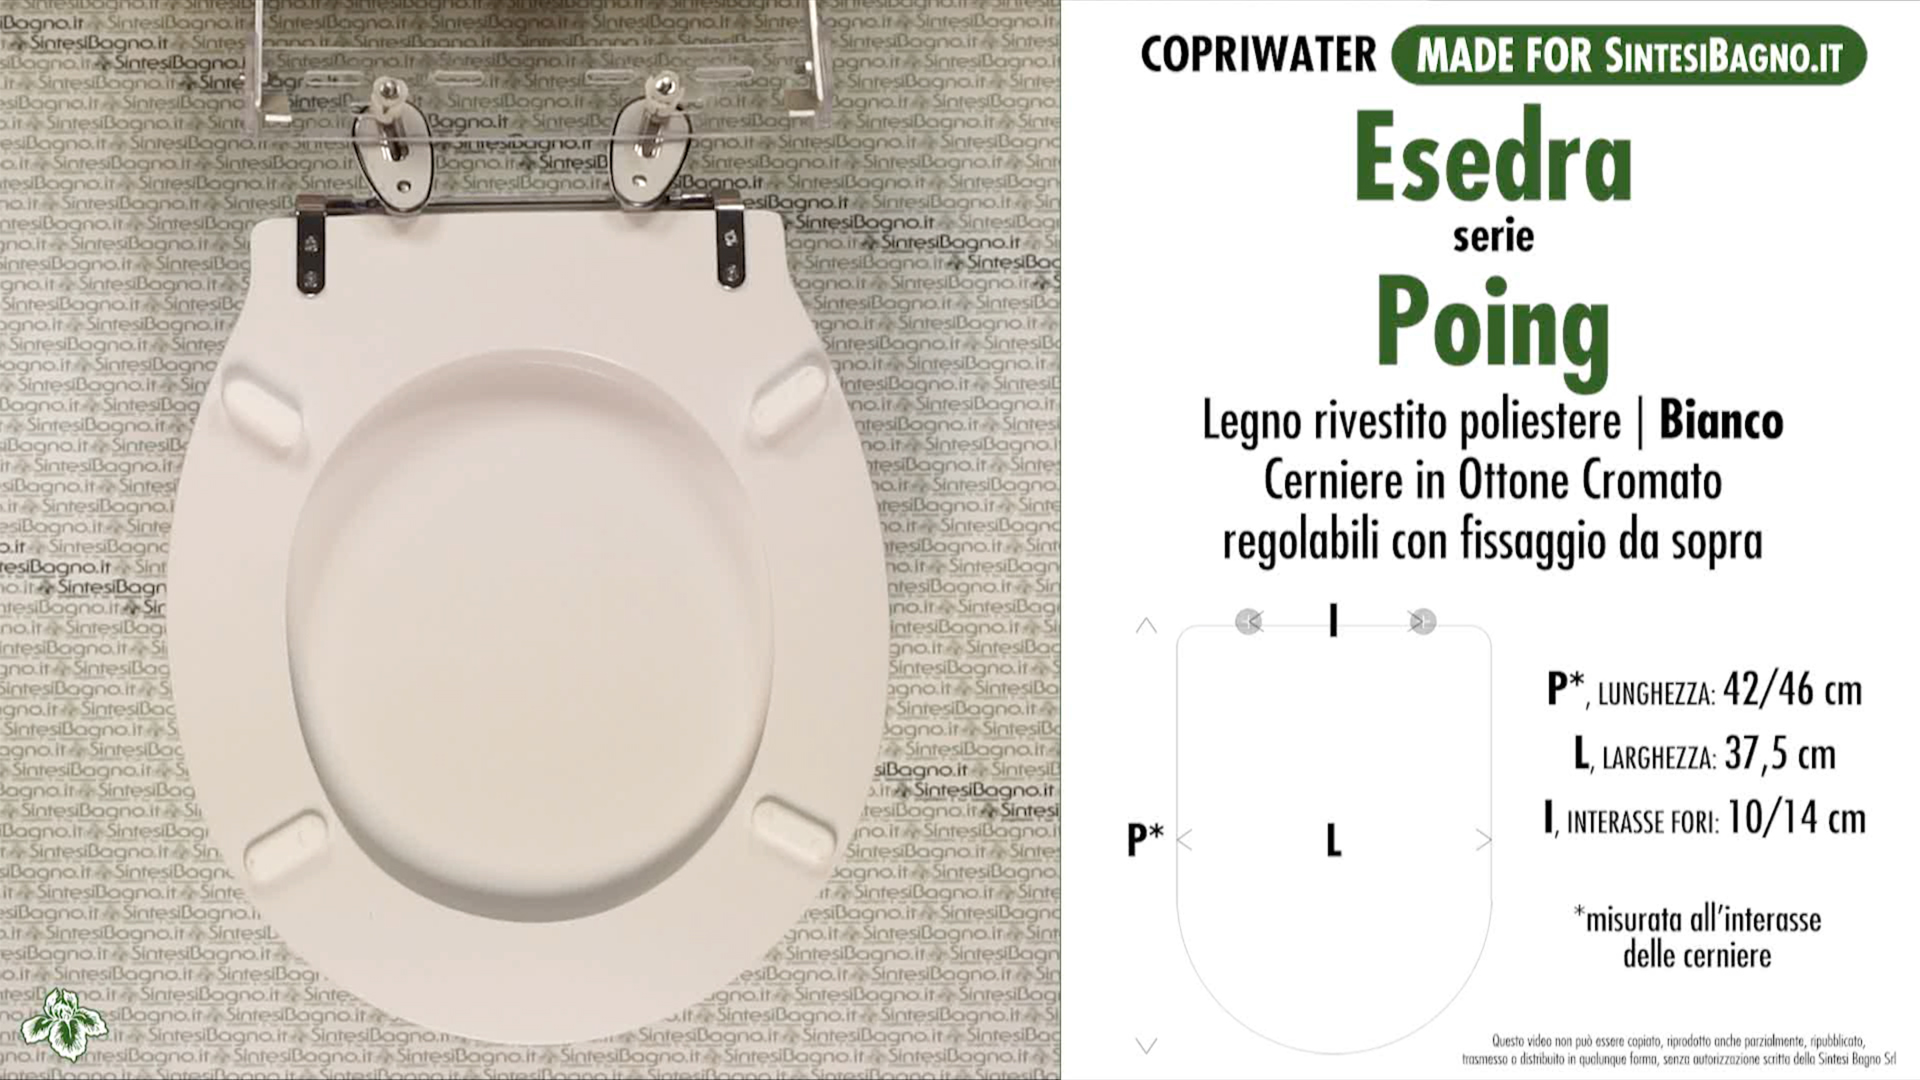 Schede tecniche misure copriwater esedra serie poing for Esedra water